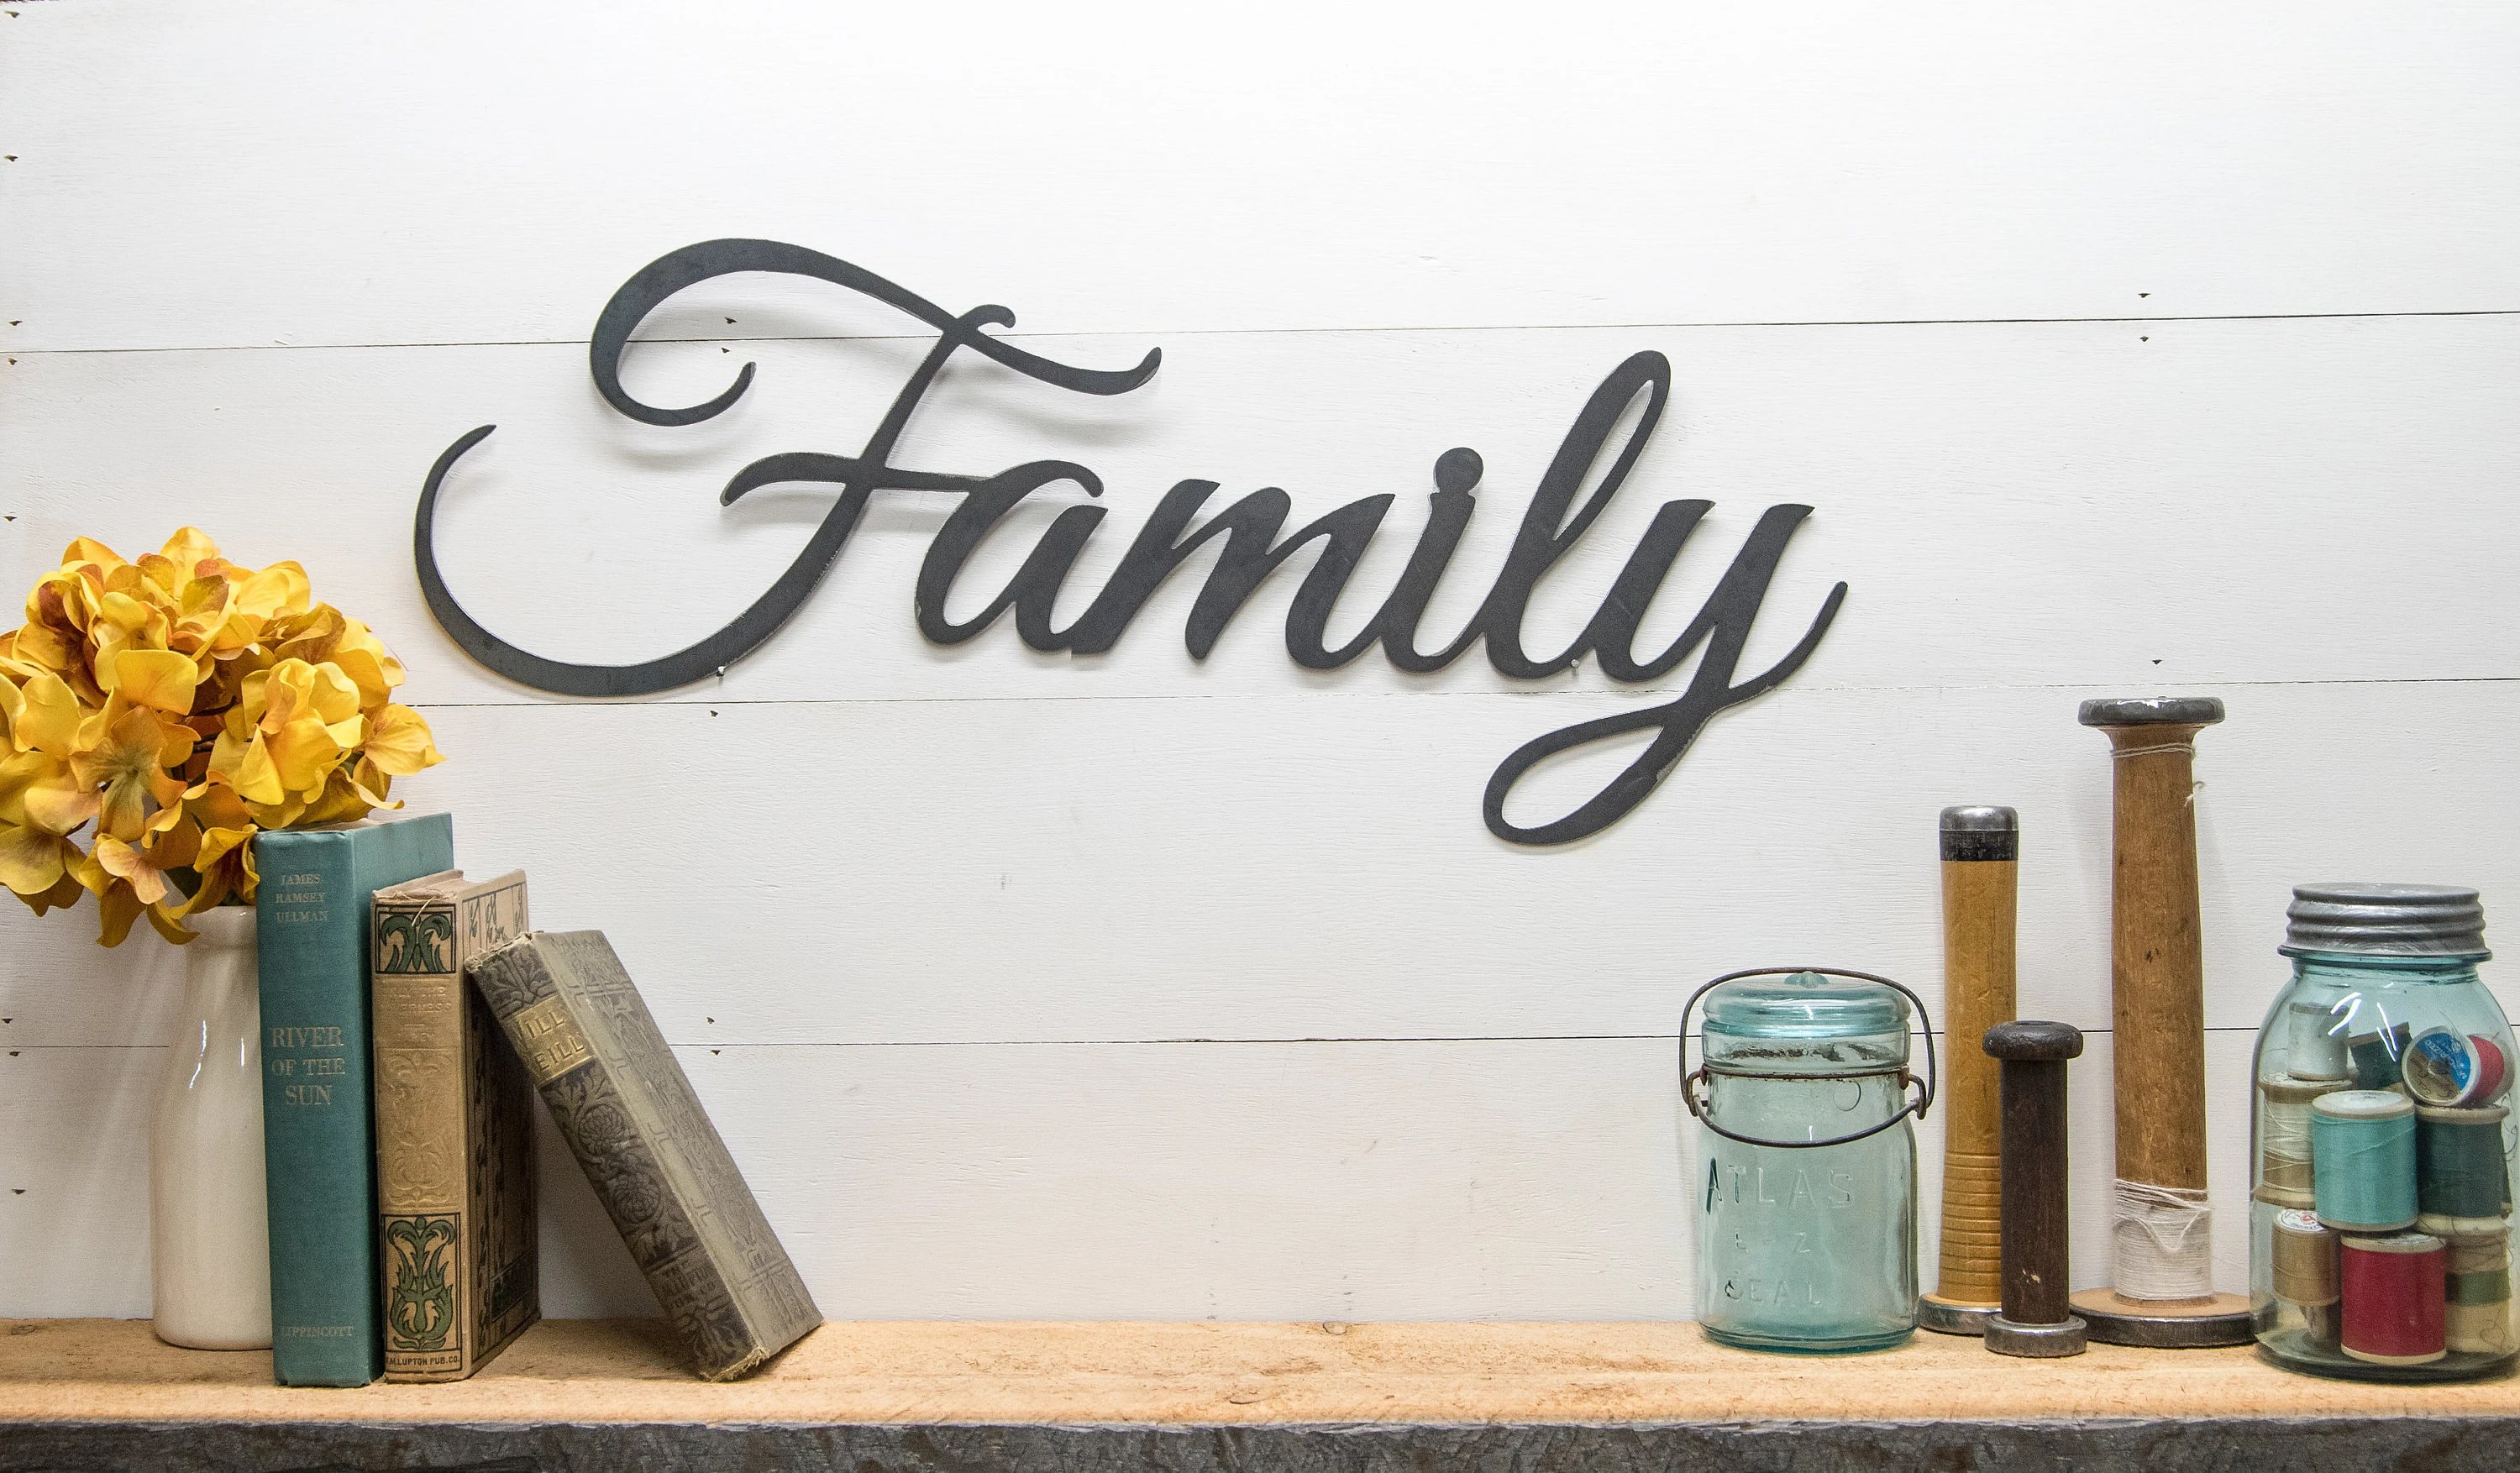 Charmful Rustic Family Metal Farmhouse Home Country Family Sign Rustic Word Wall House Warming Gift Ideas Rustic Family Metal Farmhouse Home Country Family Sign home decor Rustic Farmhouse Home Decor